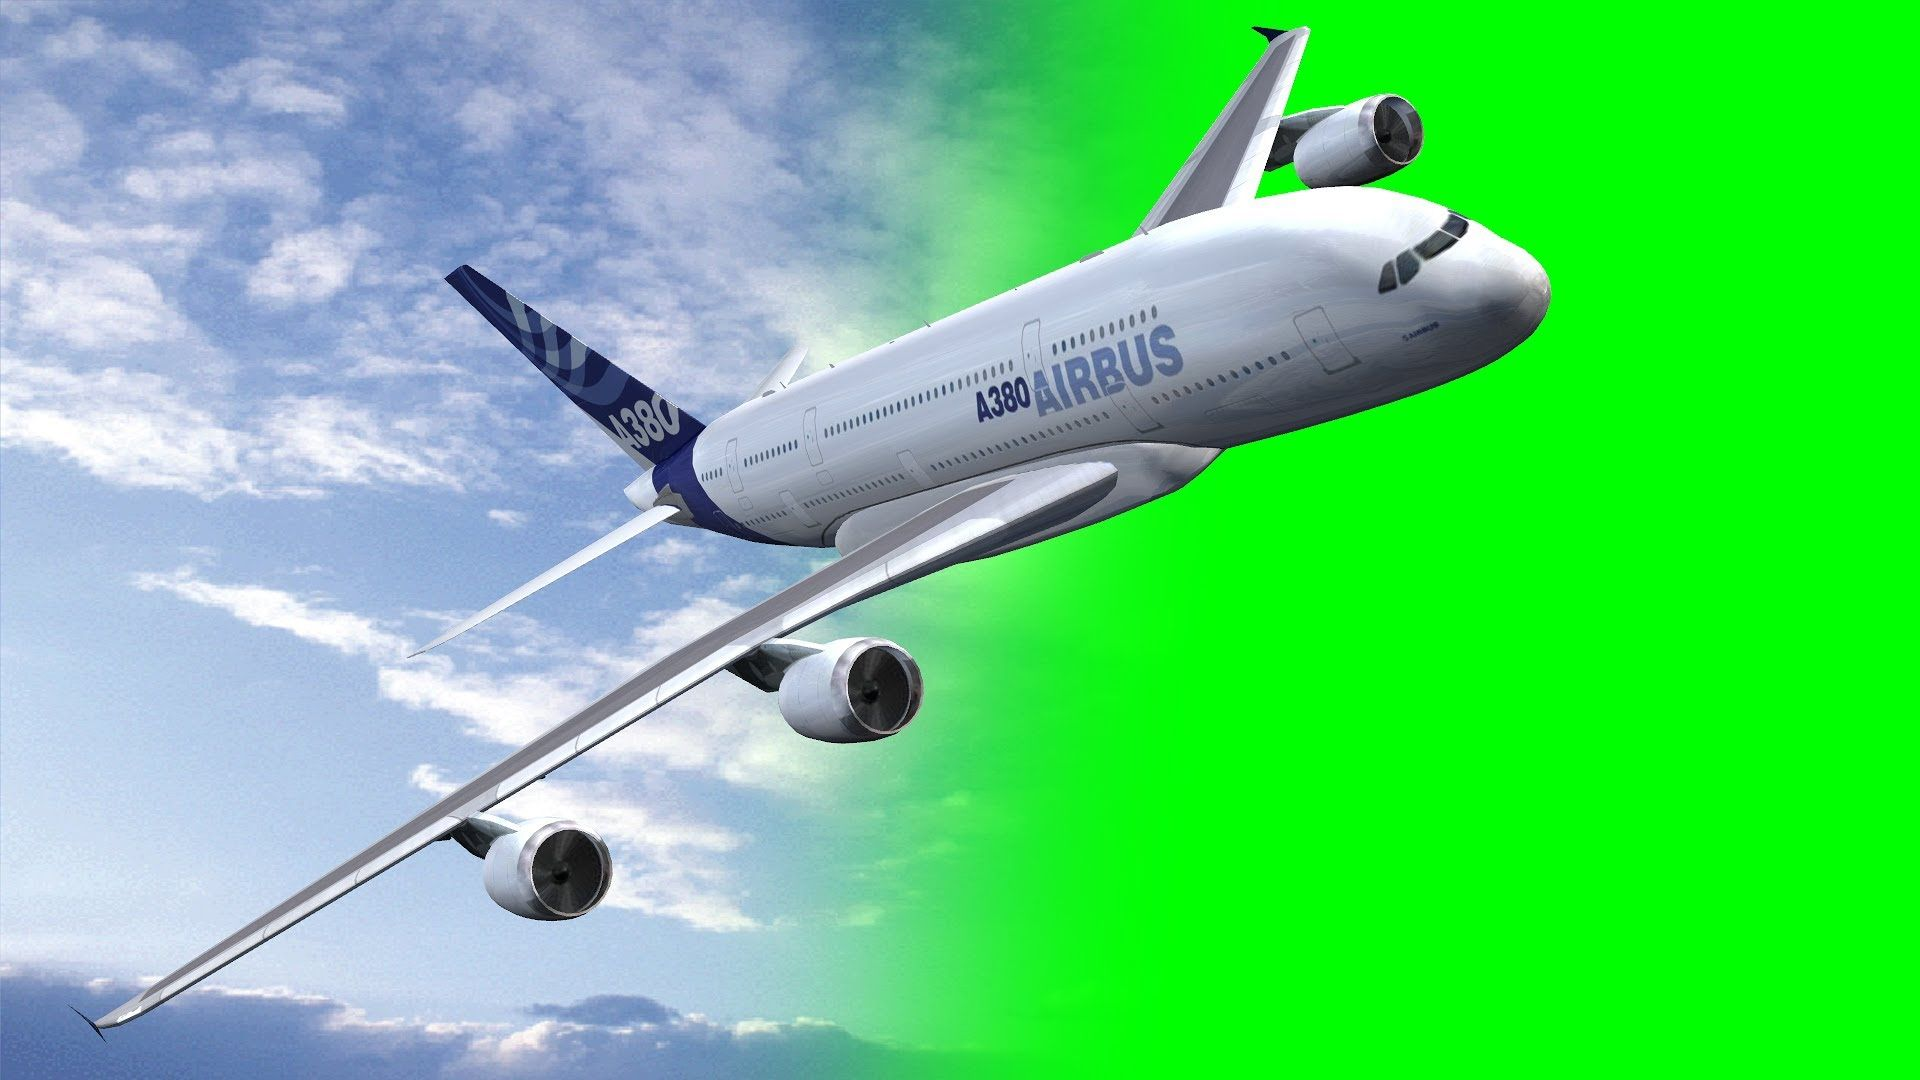 Video Download Link Http Www Freegreenscreen Com Airplane Airbus A380 Fly By Green Screen Free Download Html Videos